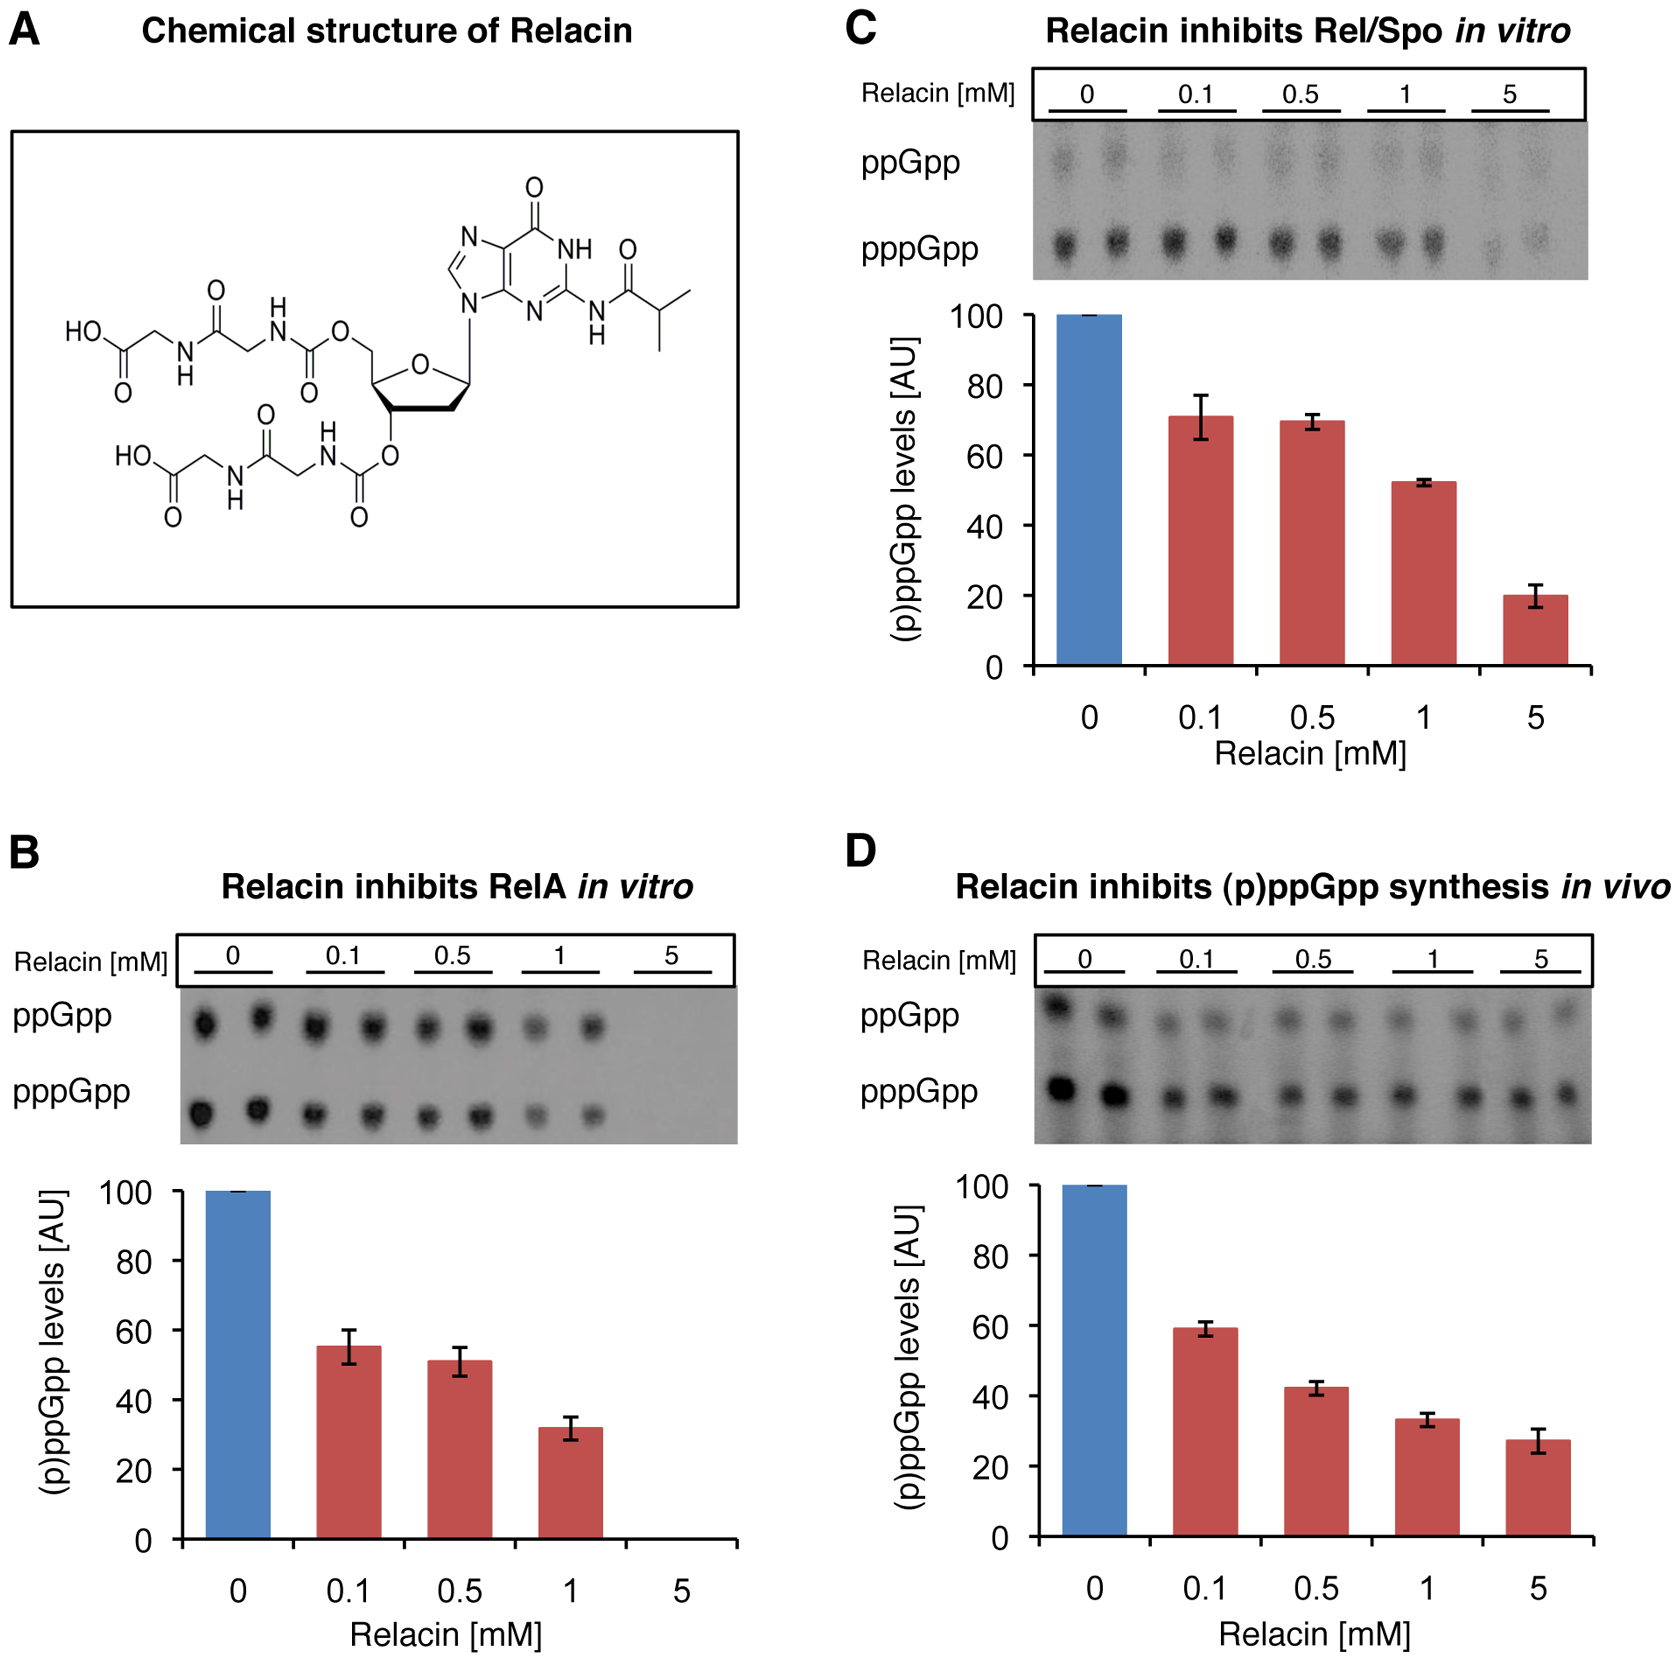 Relacin inhibits the activity of Rel proteins.